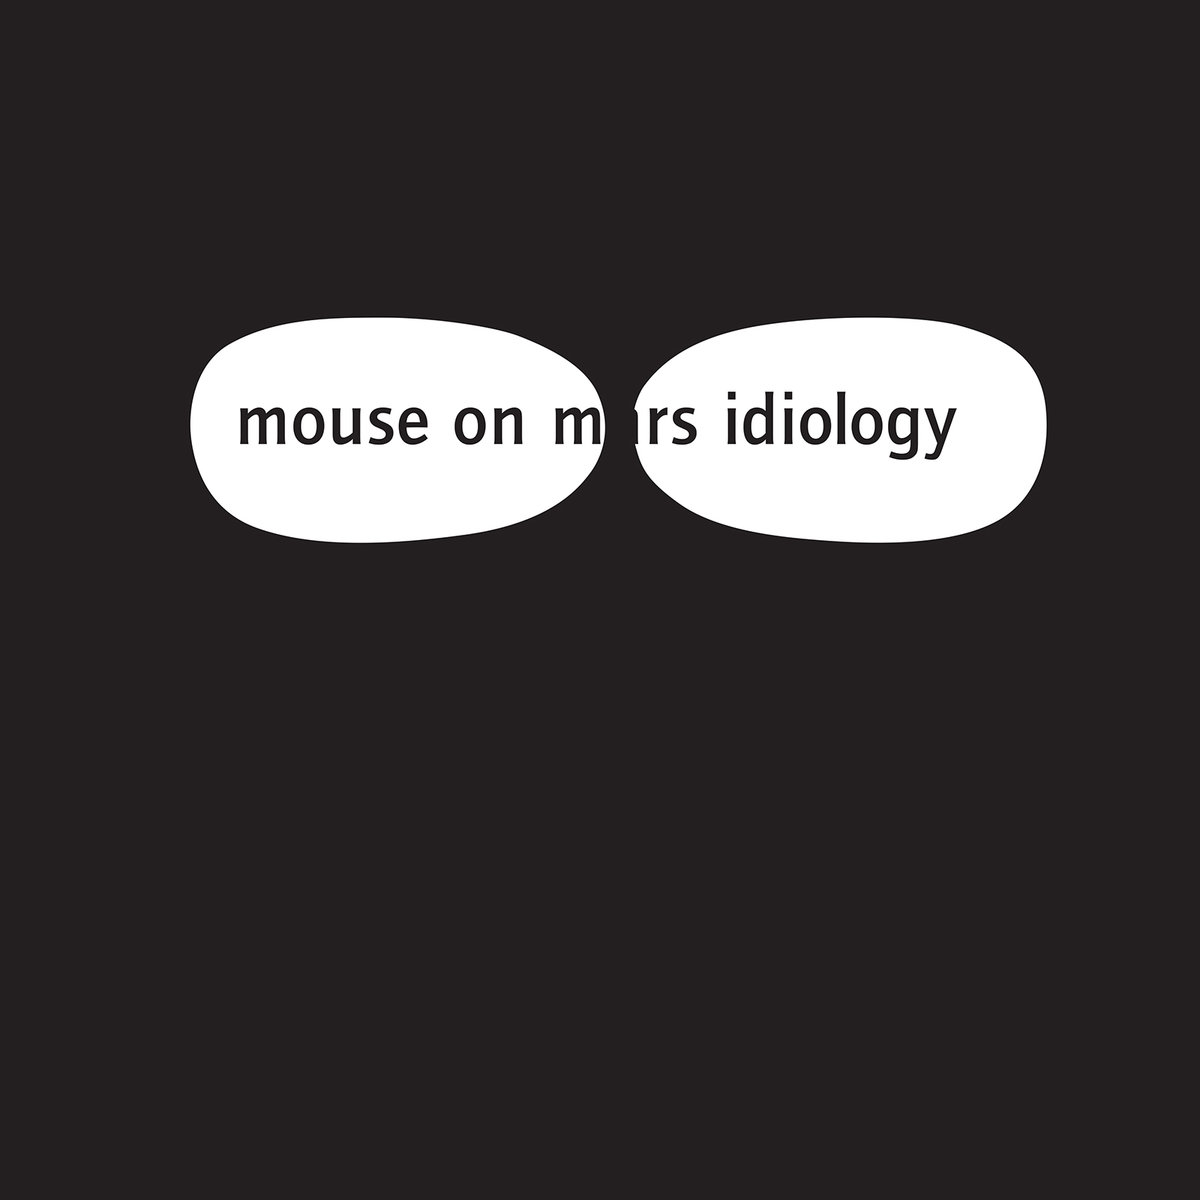 mouse on mars - Idiology (Lp)